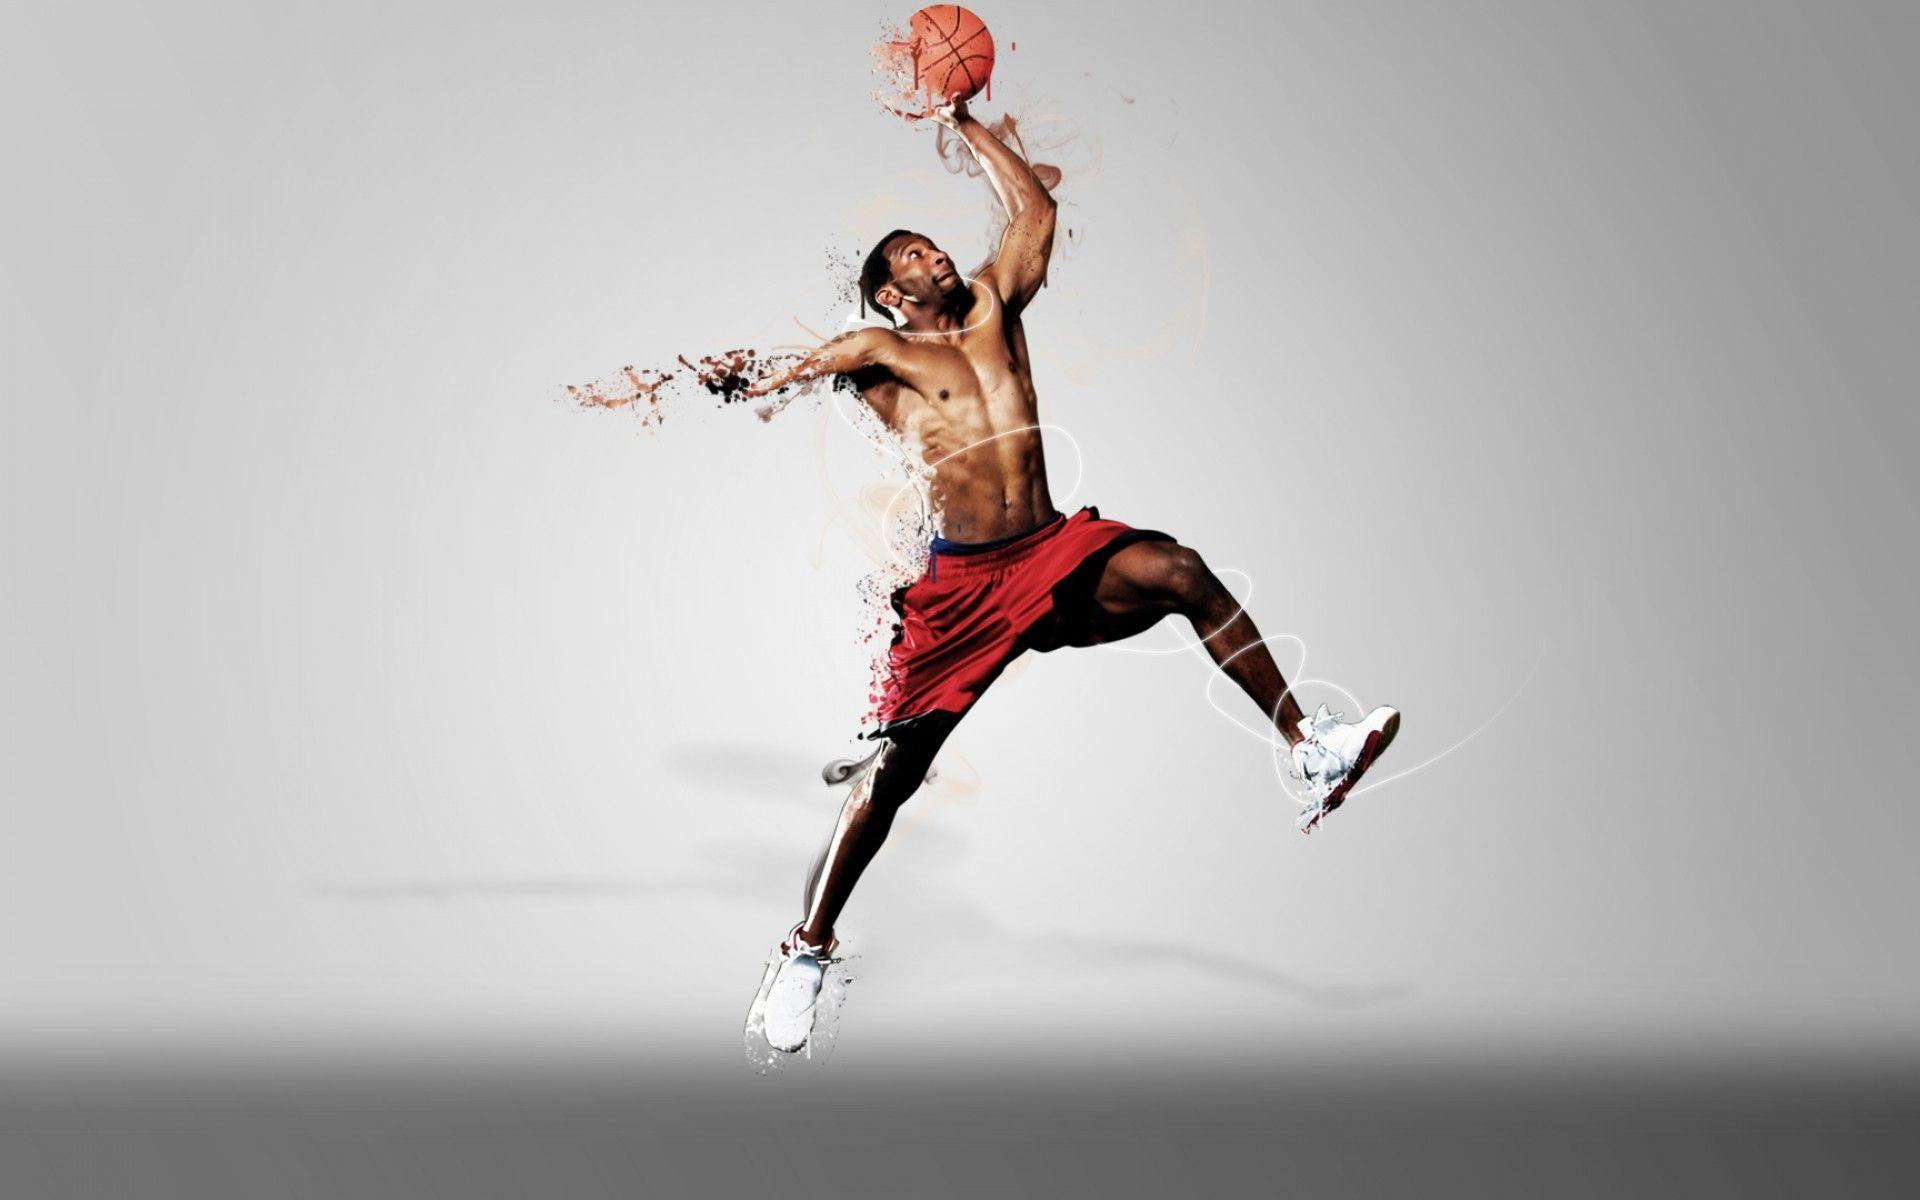 Sport Wallpaper For Walls: All Sports Wallpapers